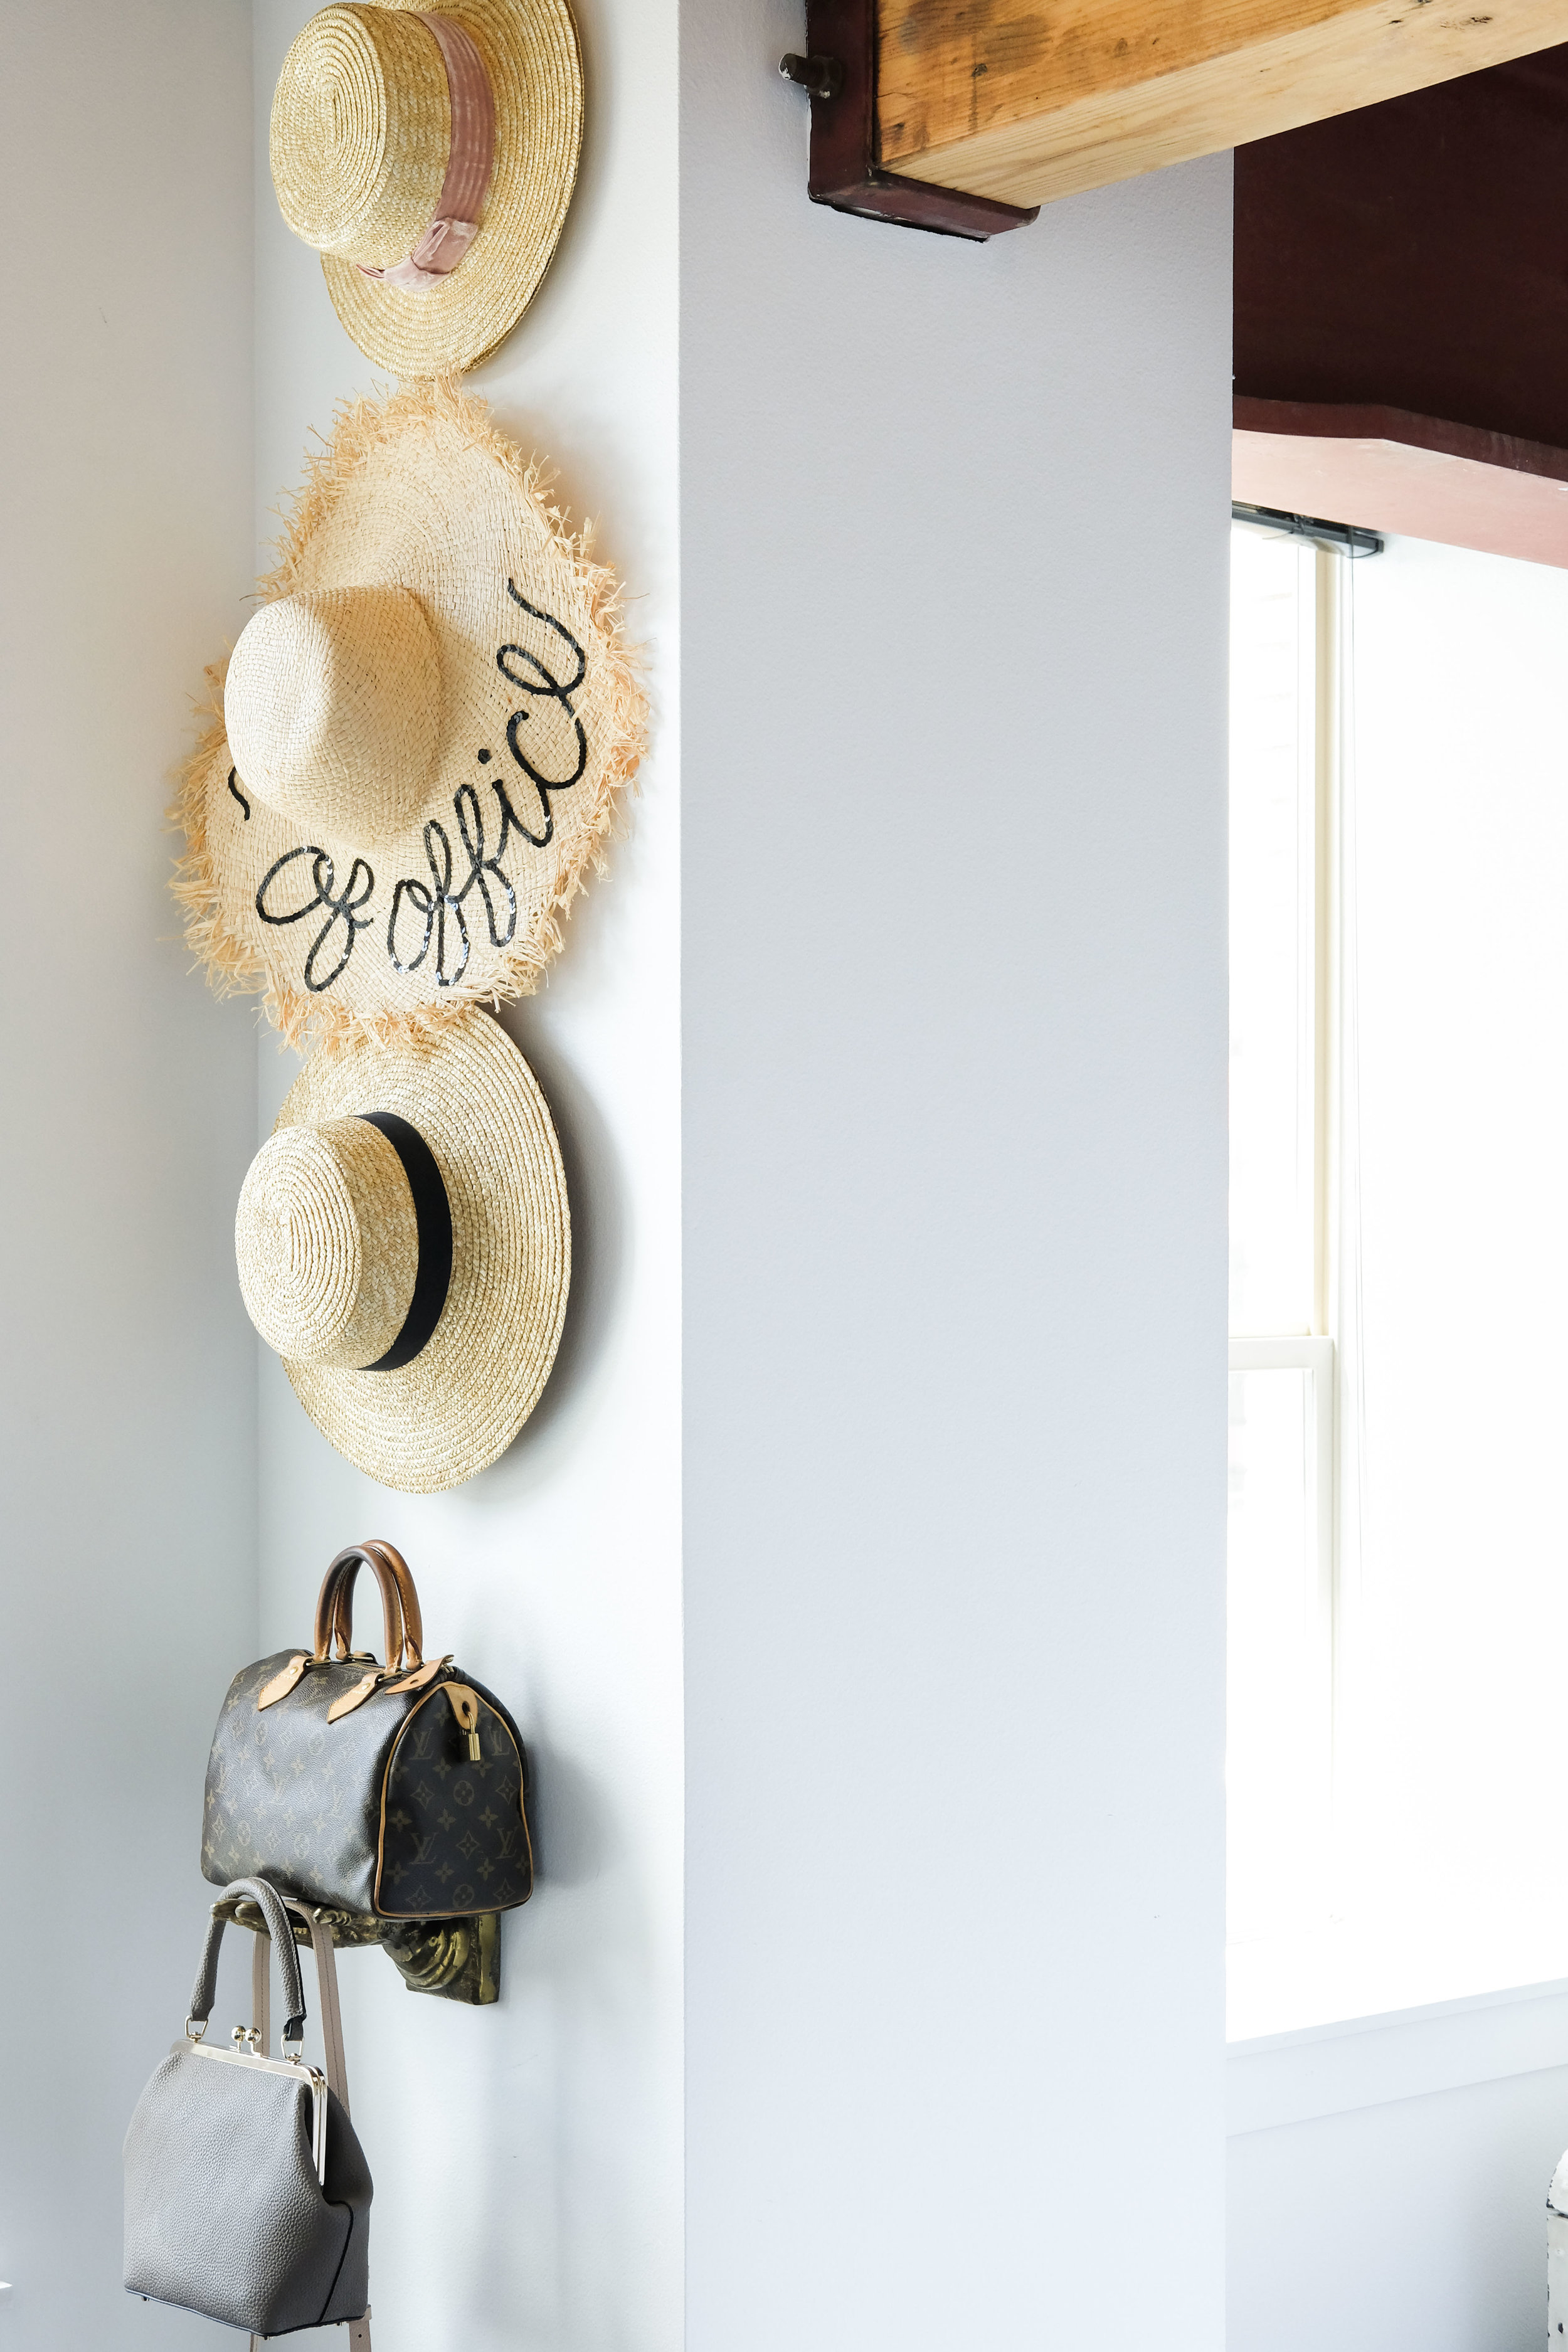 Modern loft decor.  Storage hacks for small bedrooms.  Hats and handbags display like a gallery wall.